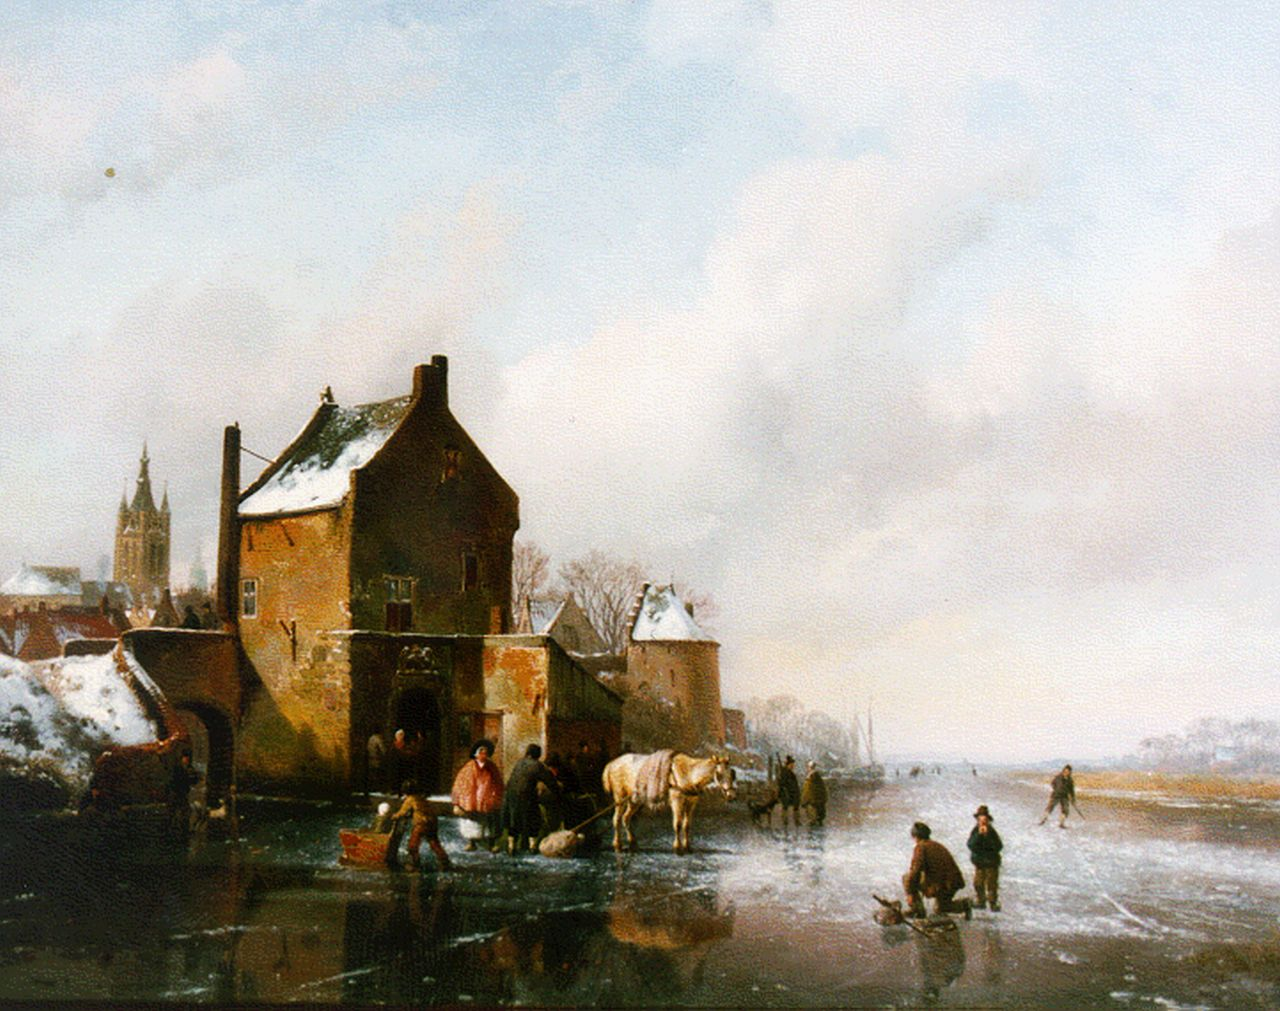 Sande Bakhuyzen H. van de | Hendrikus van de Sande Bakhuyzen, A frozen waterway, Delft in the distance, oil on panel 43.7 x 56.8 cm, signed l.l. and dated 1836